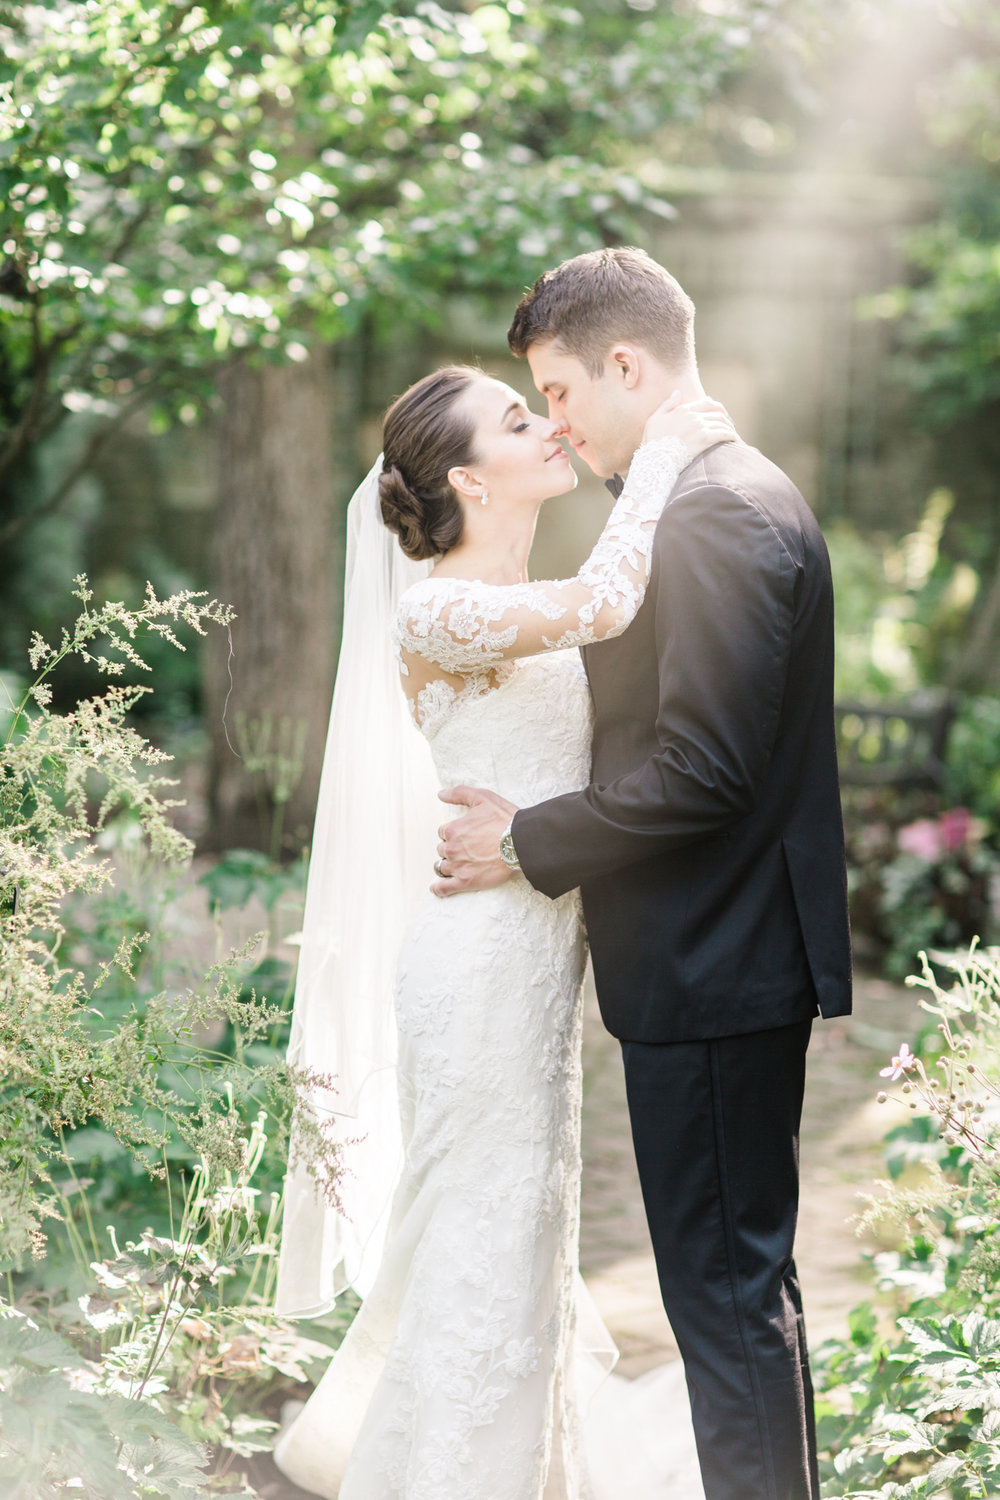 Weddings are about moments and memories, - Sarah at Sarah Renee Studios specialize in capturing authentic, organic memory making moments that last a lifetime.